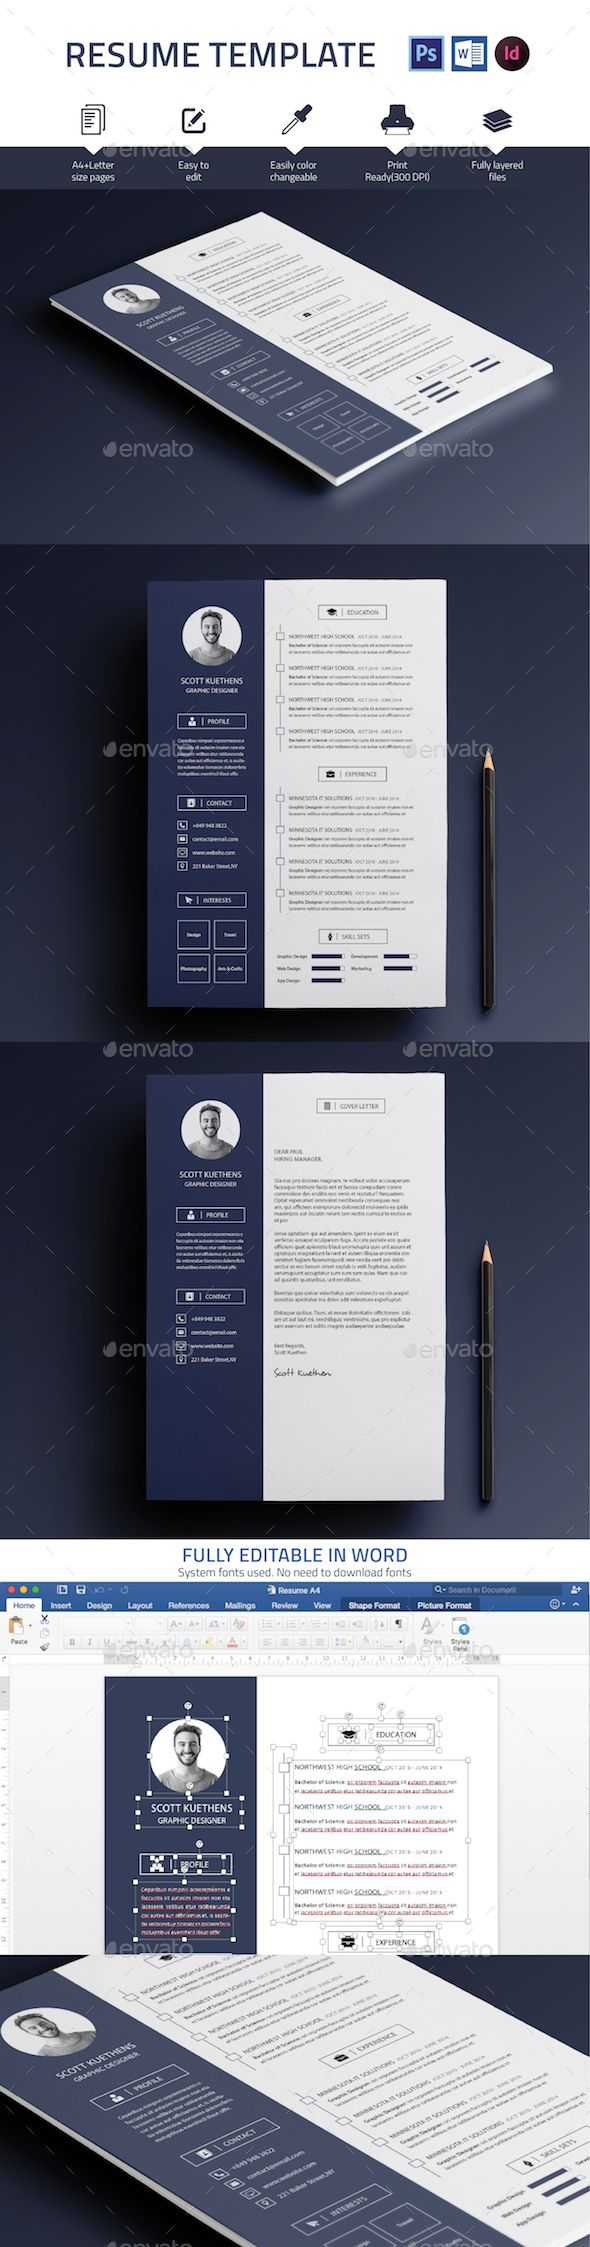 Resume Template 237 best CV images on